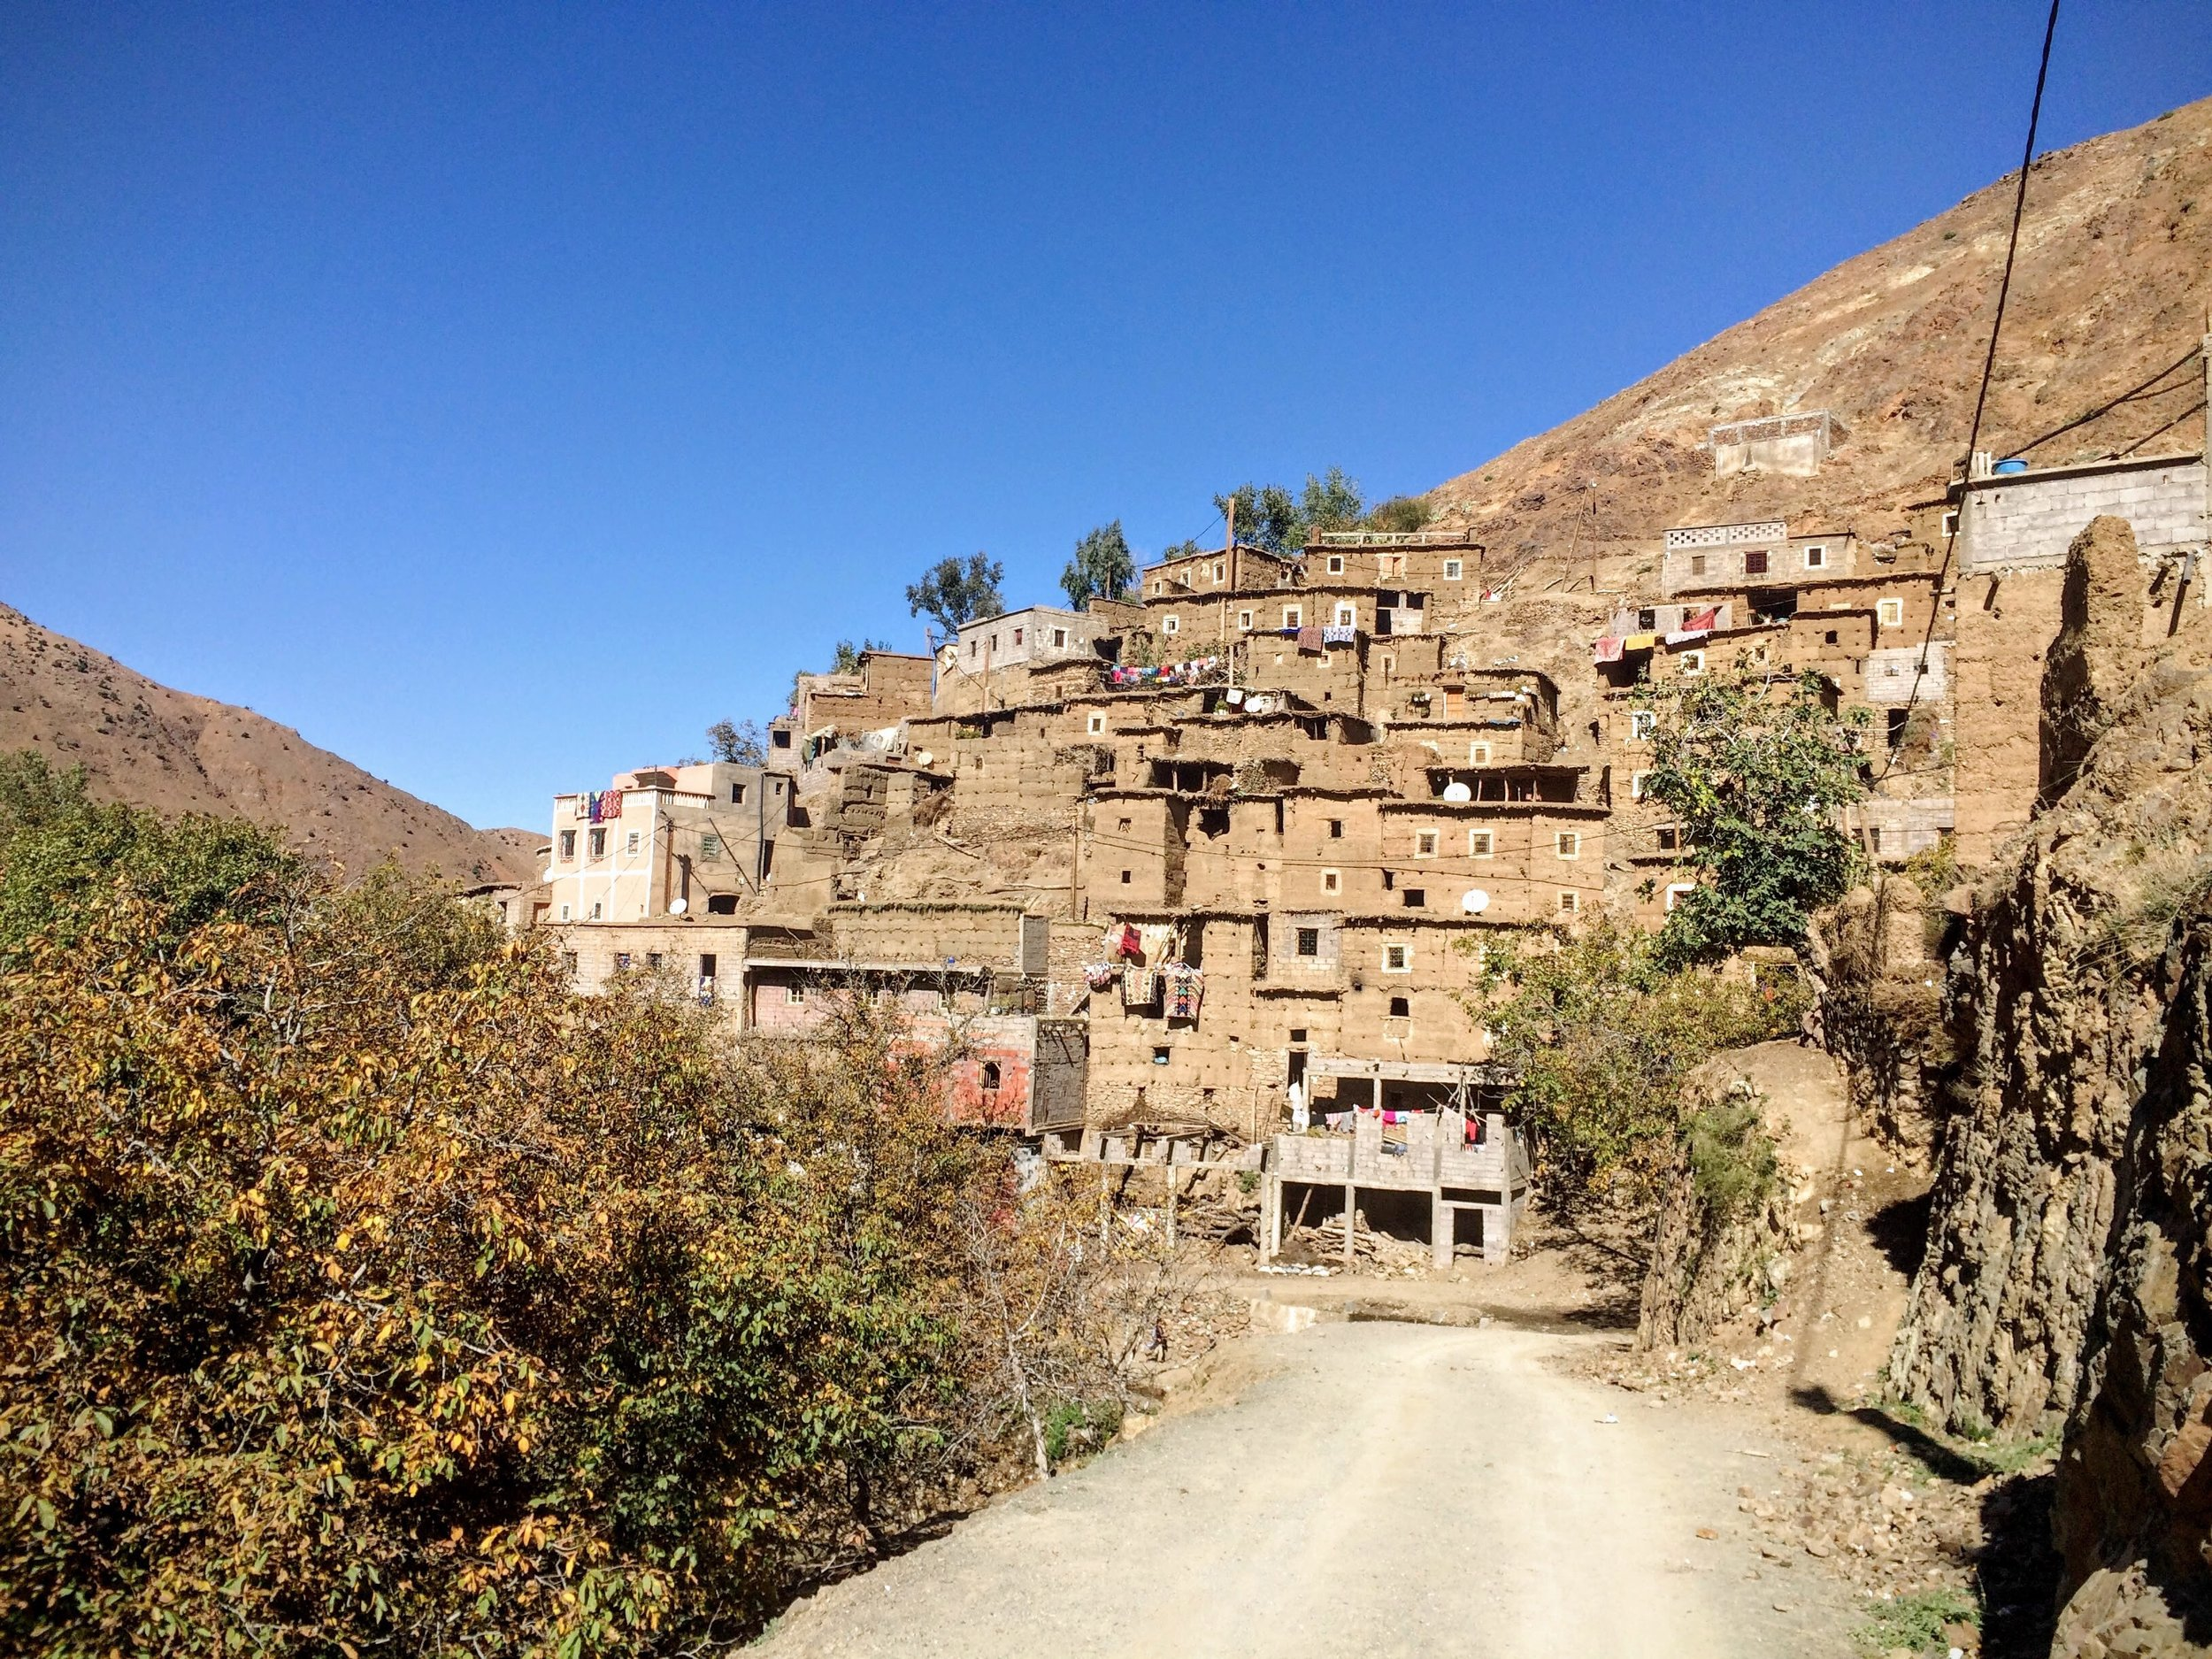 One of the many mountain villages we passed through during the race